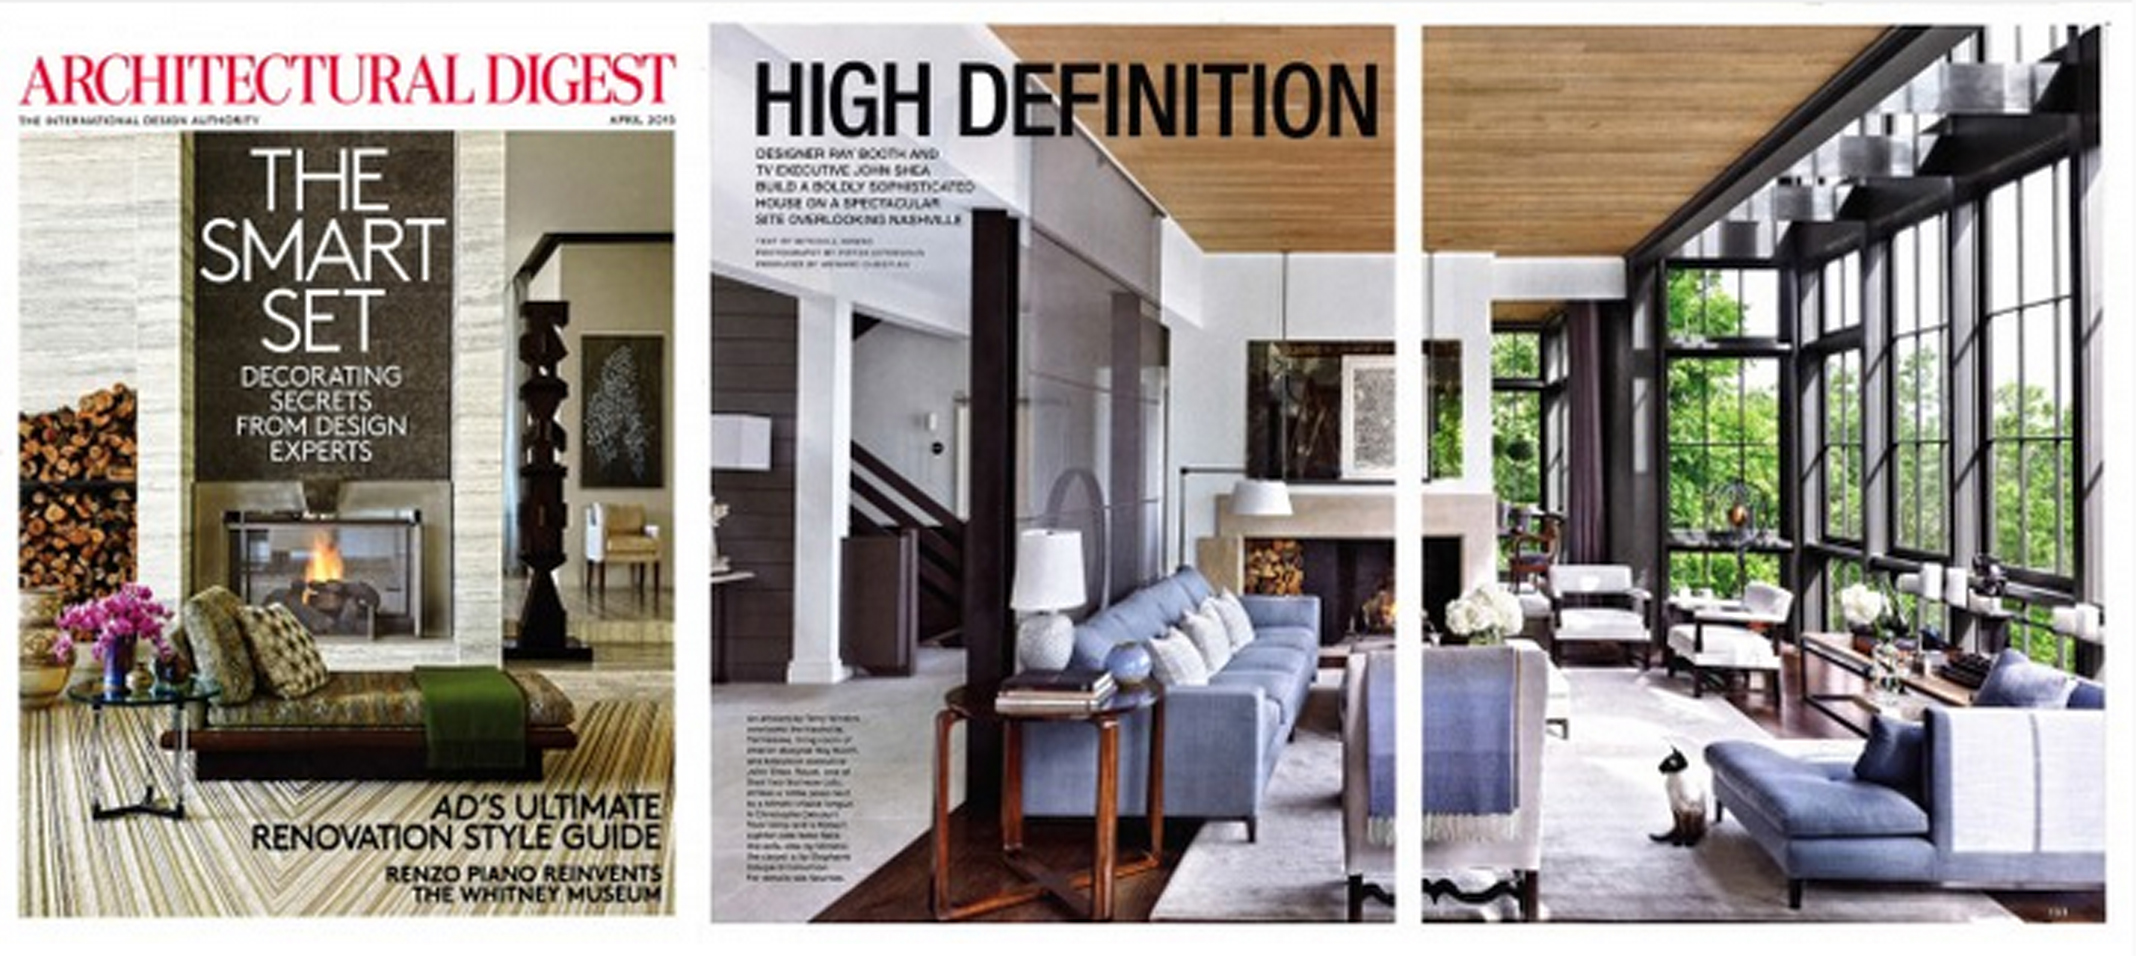 ARCHITECTURAL DIGEST APRIL 2015